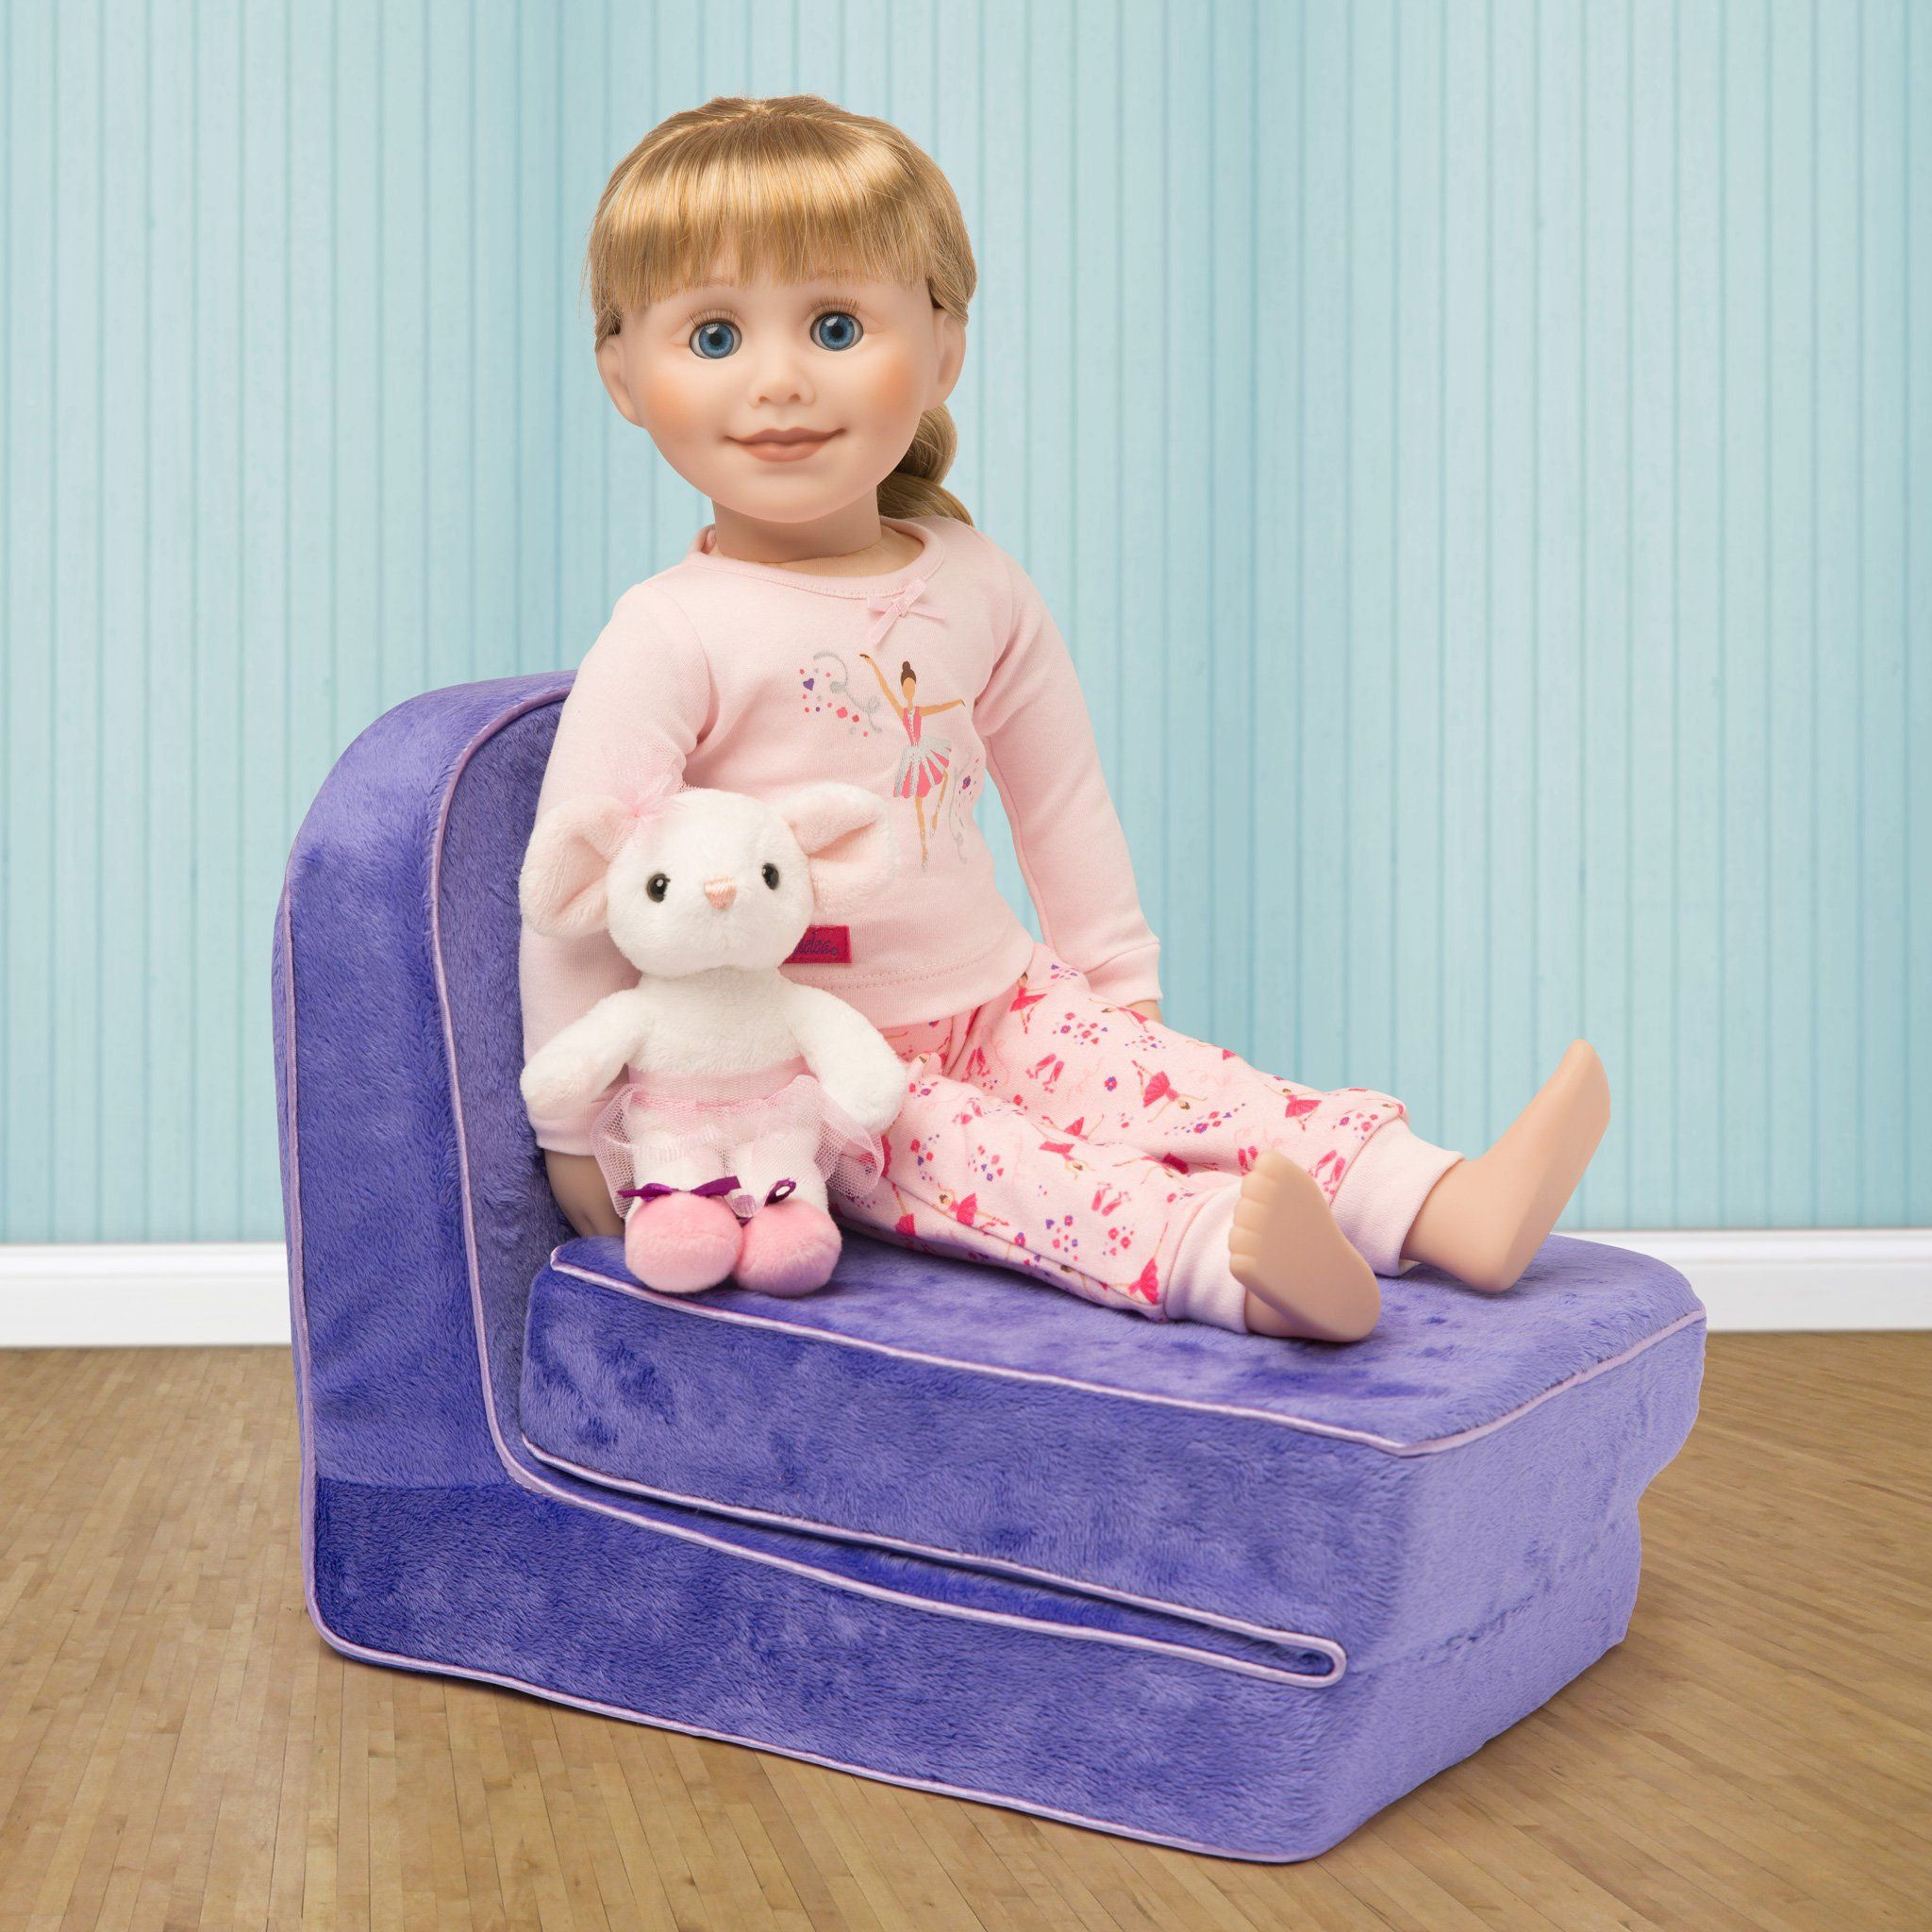 slumber lounge purple convertible fold-out lounge chair fits all 18 inch dolls.